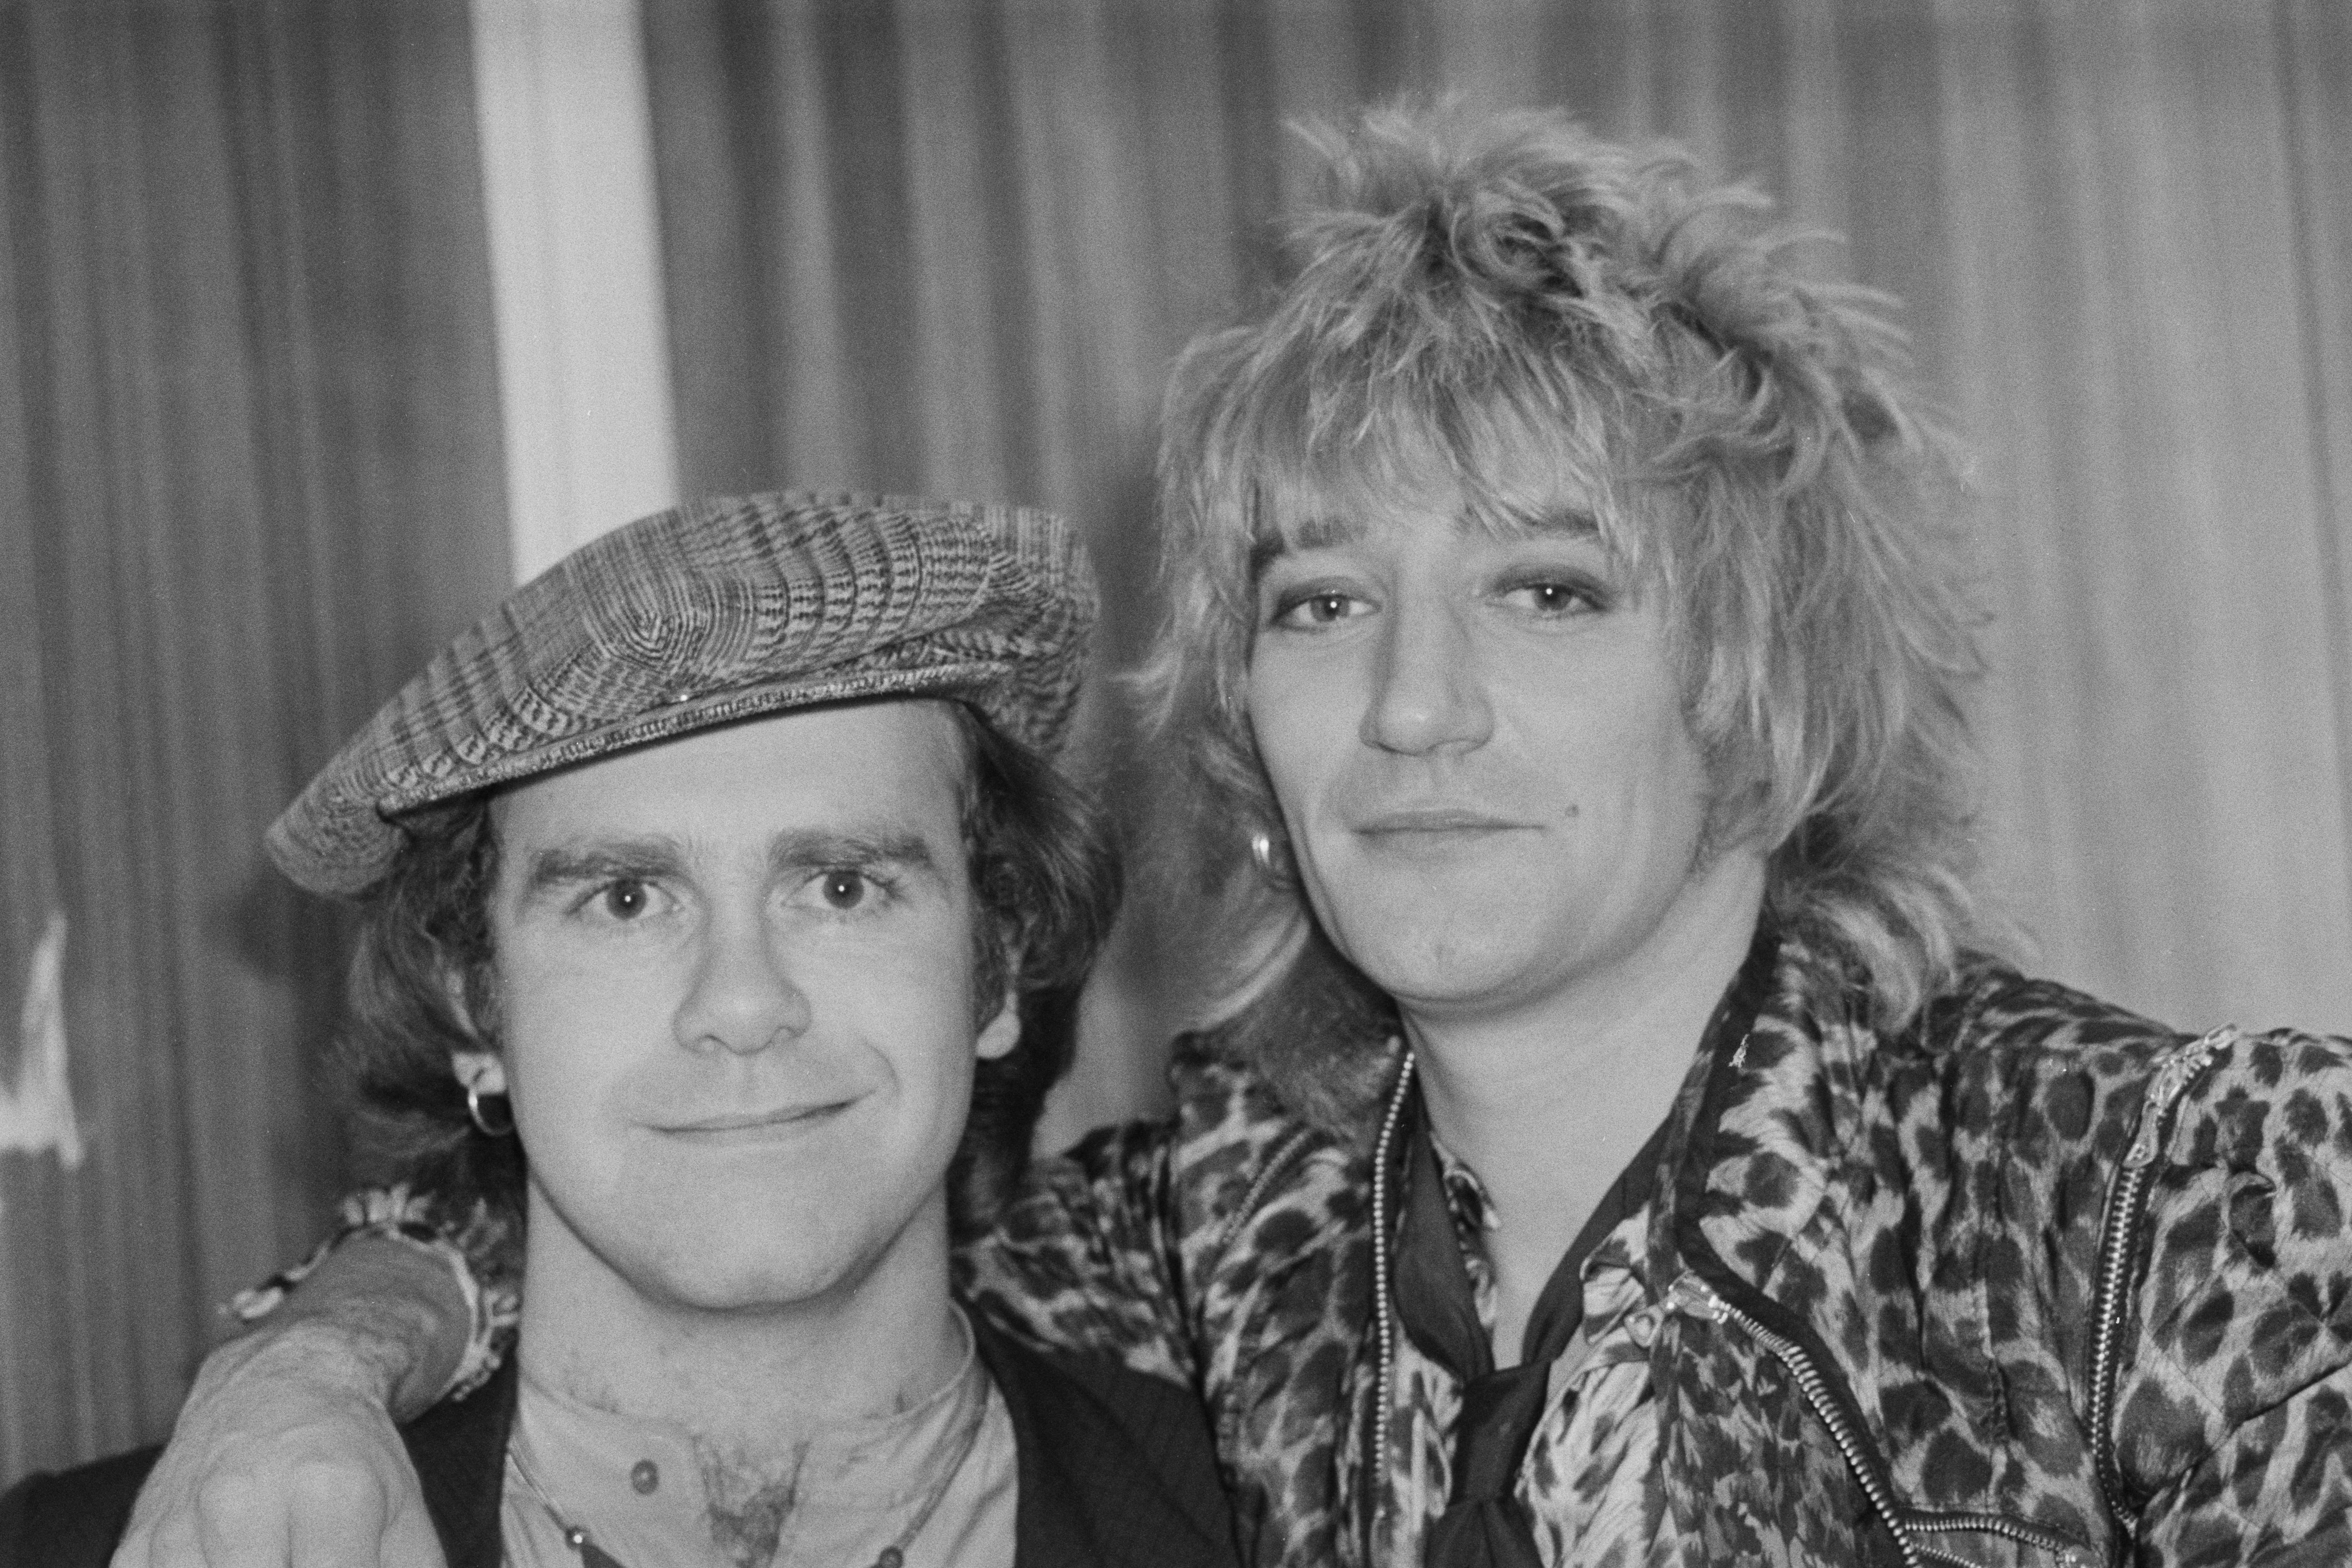 British singer, pianist and composer Elton John with British rock singer and songwriter Rod Stewart at the Olympia, London, UK, 22nd December 1978. (Photo by Evening Standard/Hulton Archive/Getty Images)